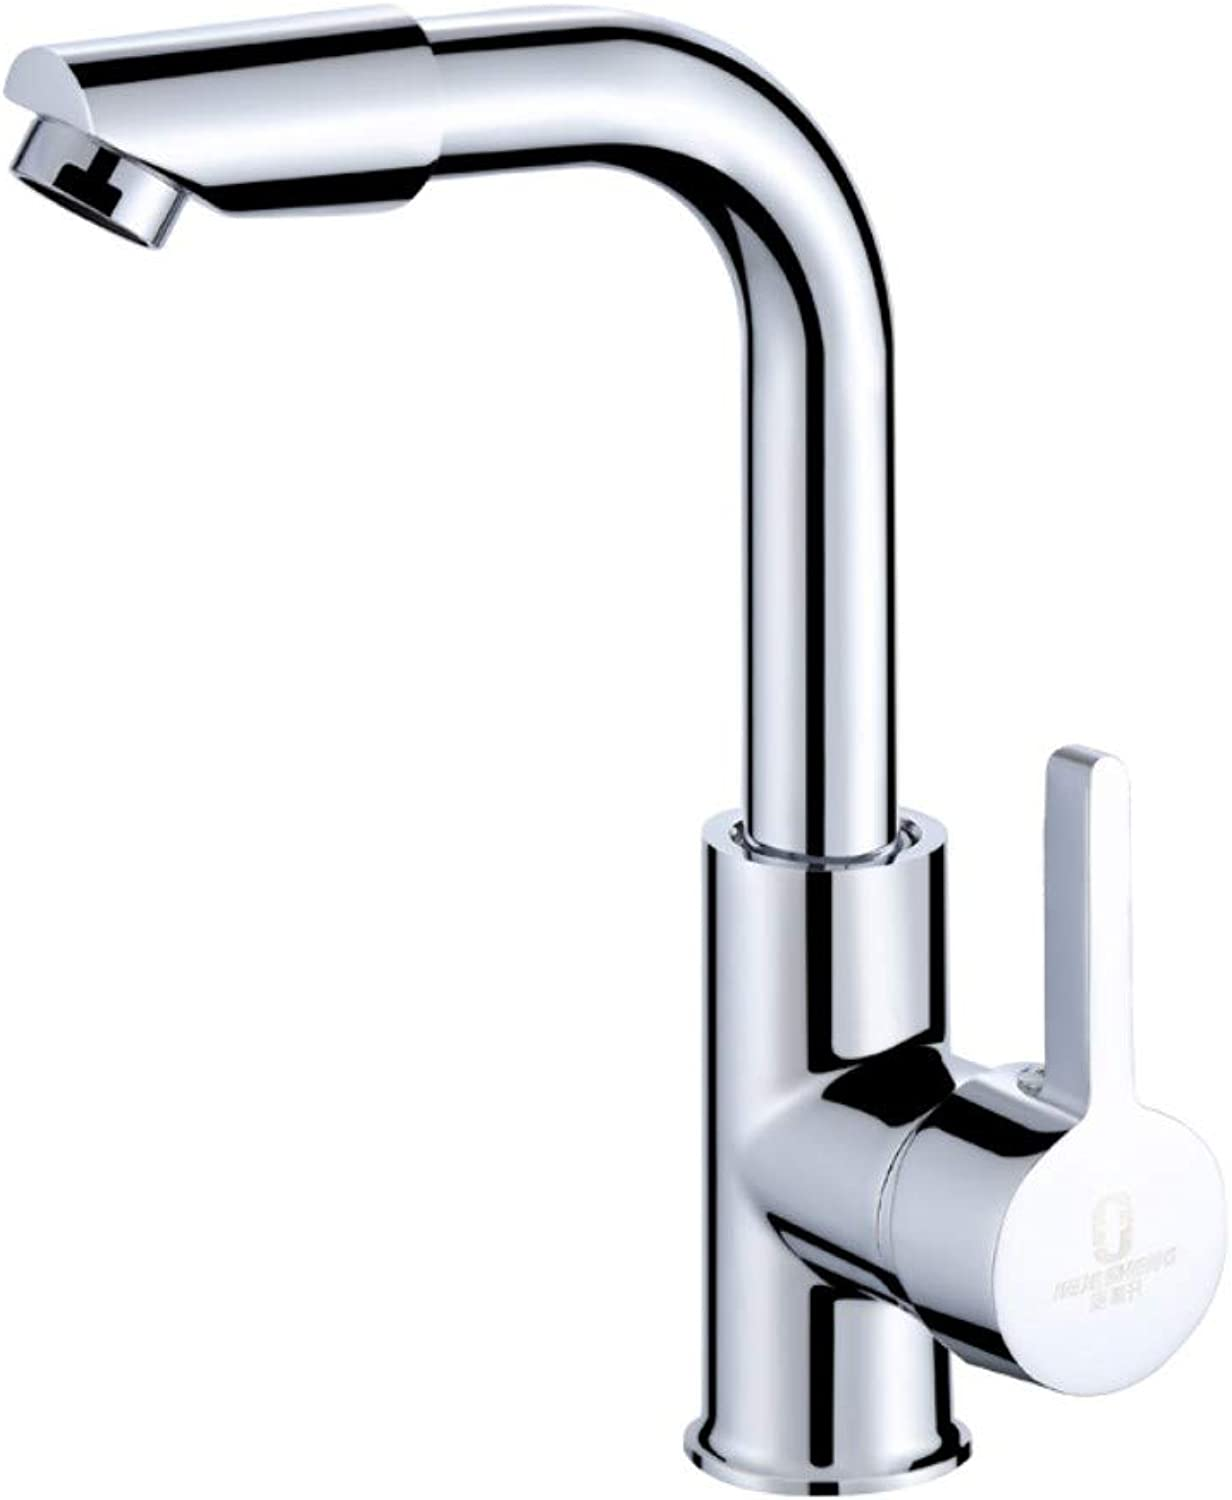 Faucet hot and cold single hole bathroom basin basin 360 degree redating faucet